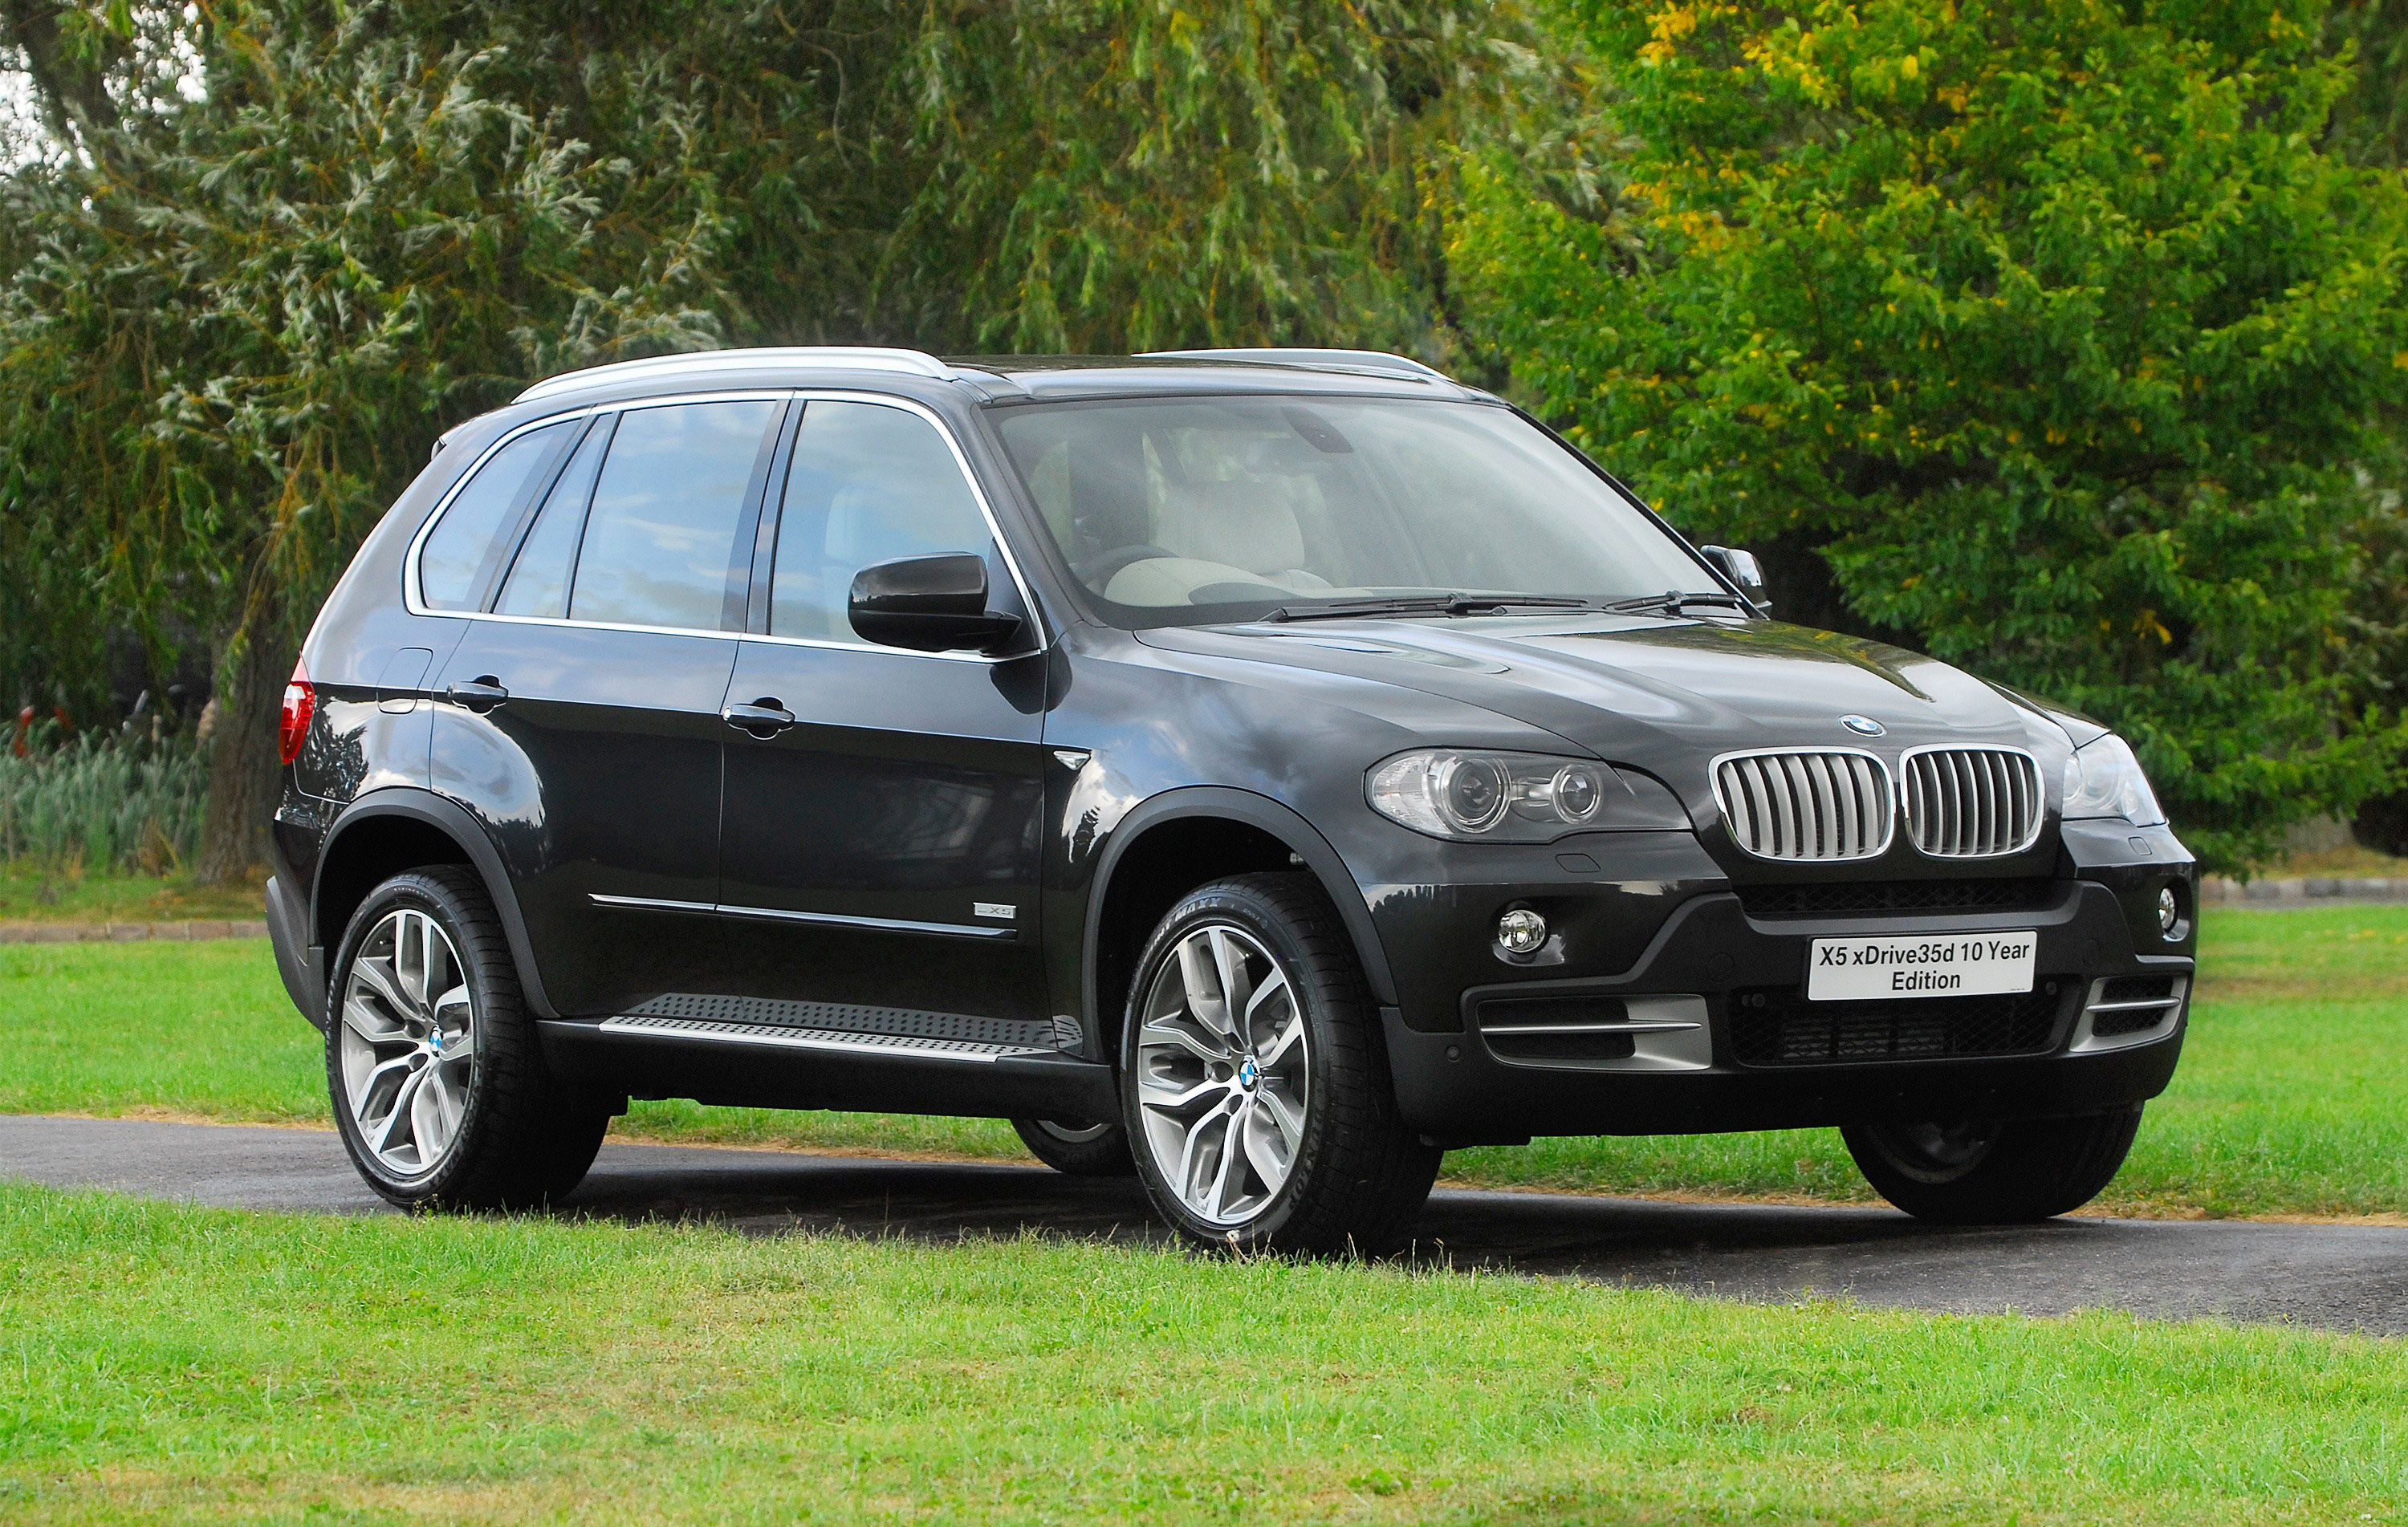 Bmw X5 Xdrive35d 10 Year Anniversary Limited Edition